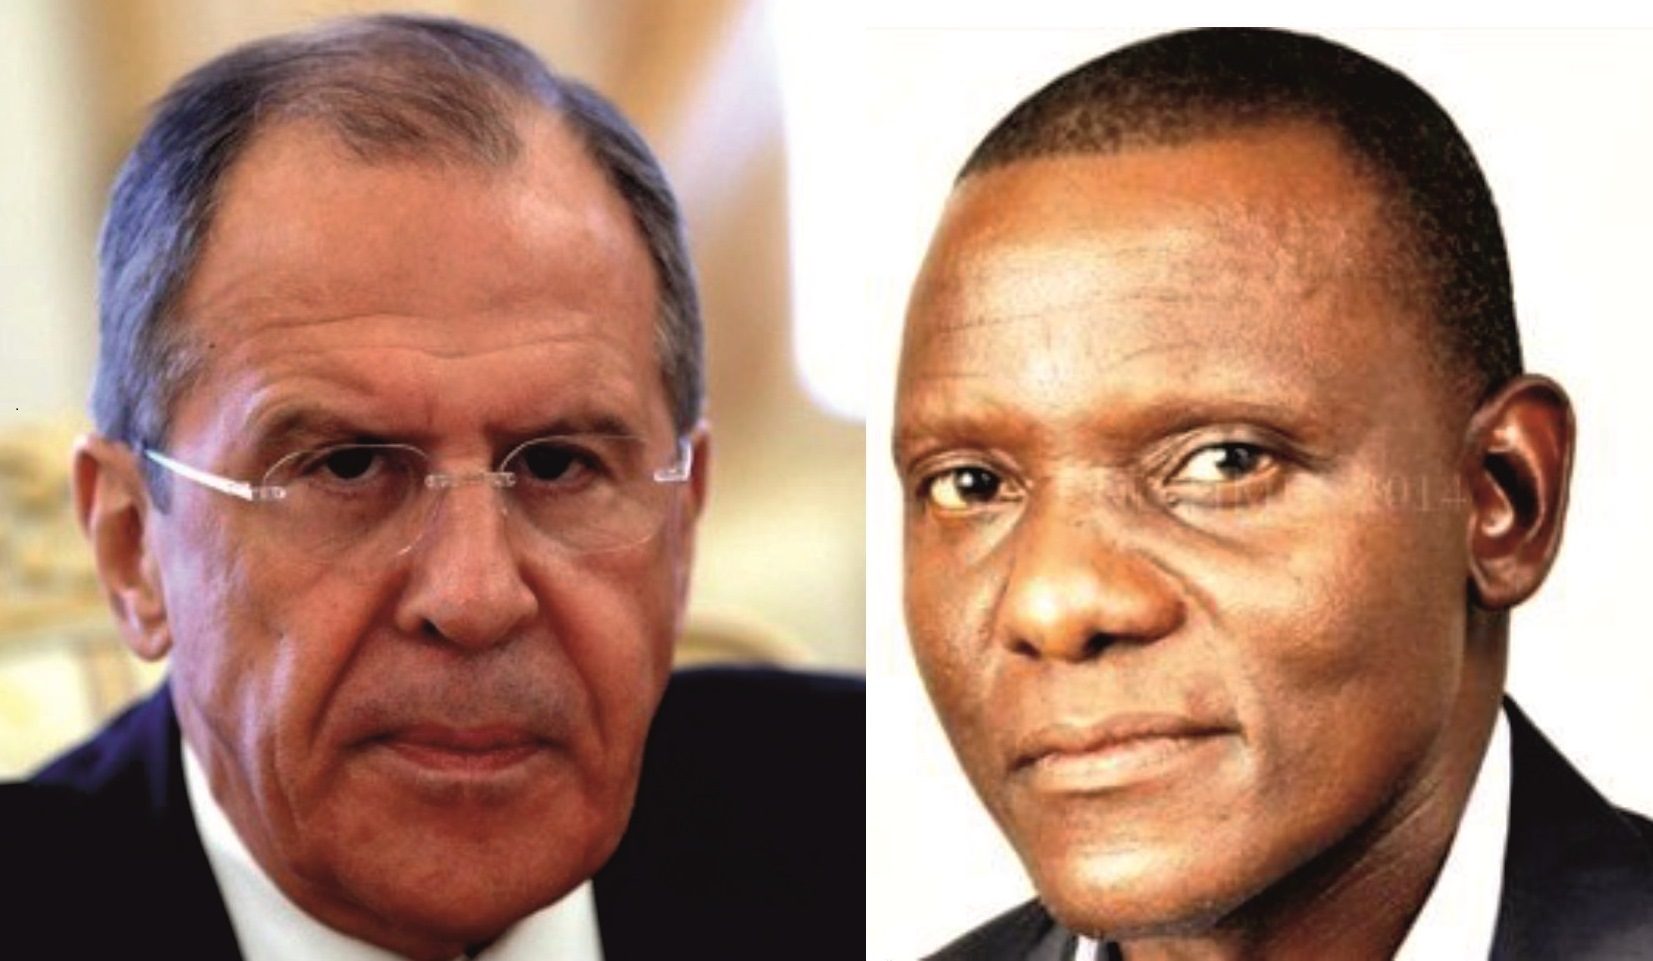 Foreign Minister Sergey Lavrov congratulated his Malawian colleague